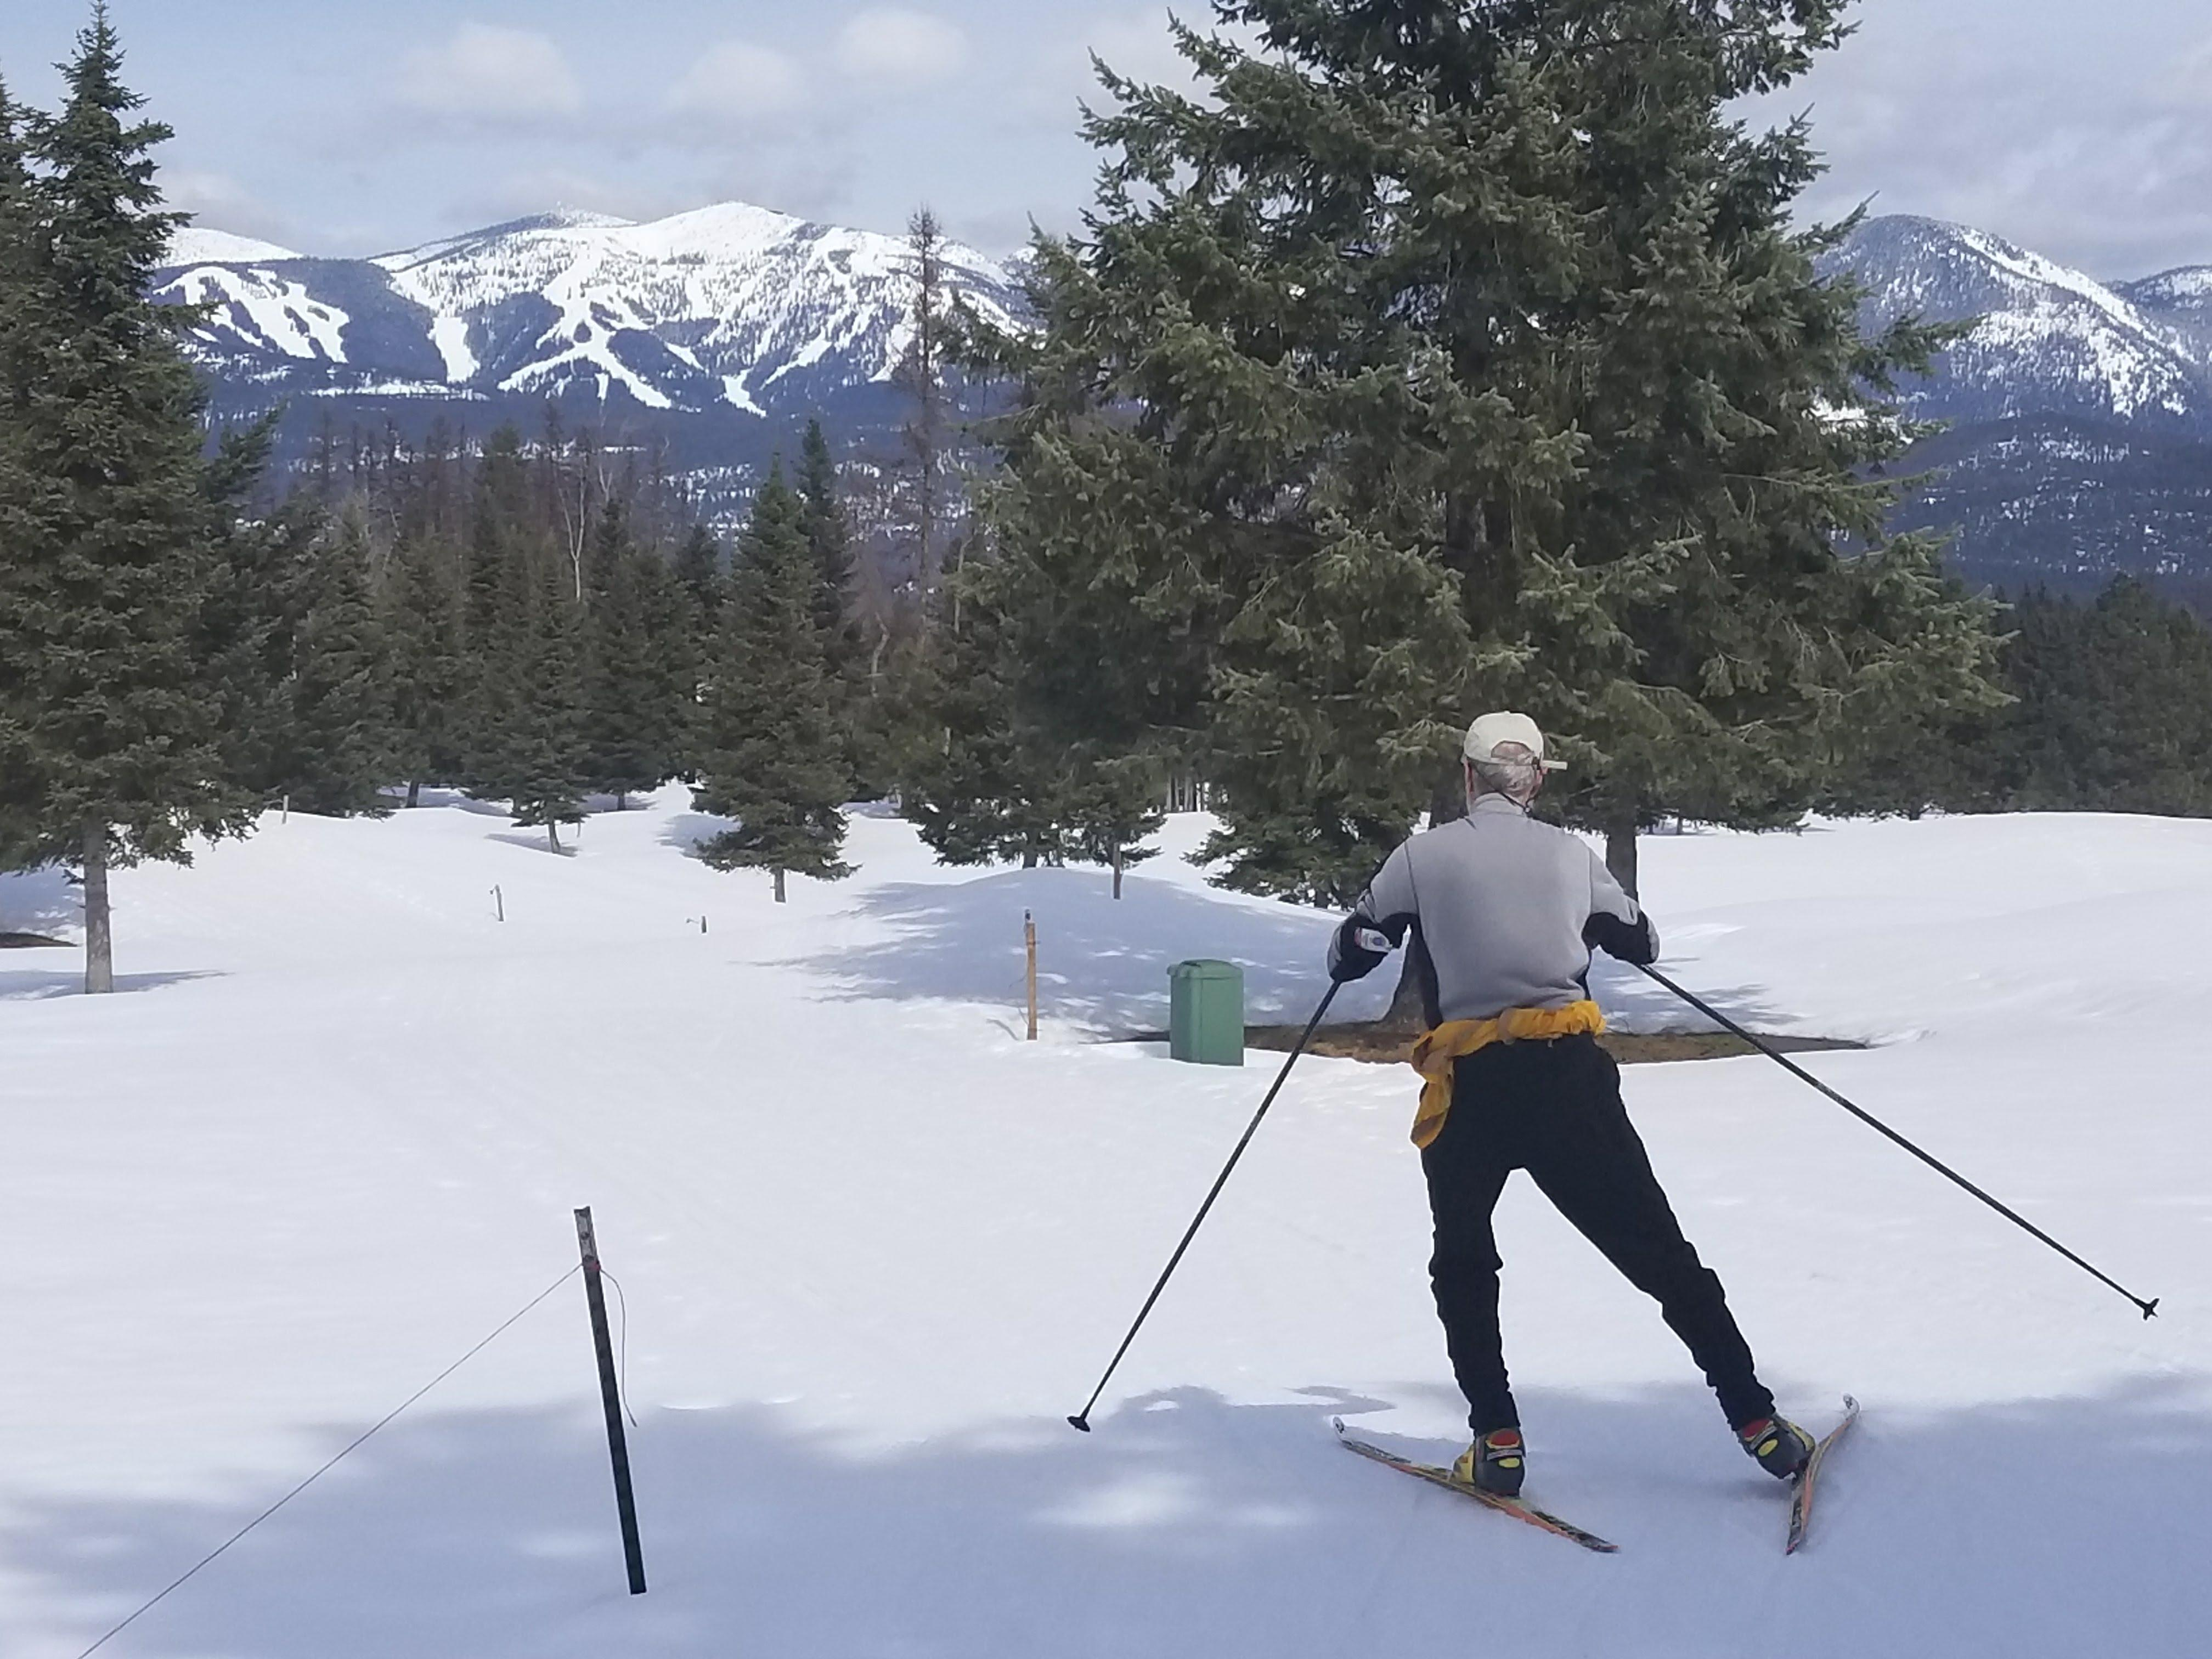 Spring Skiing with a View!